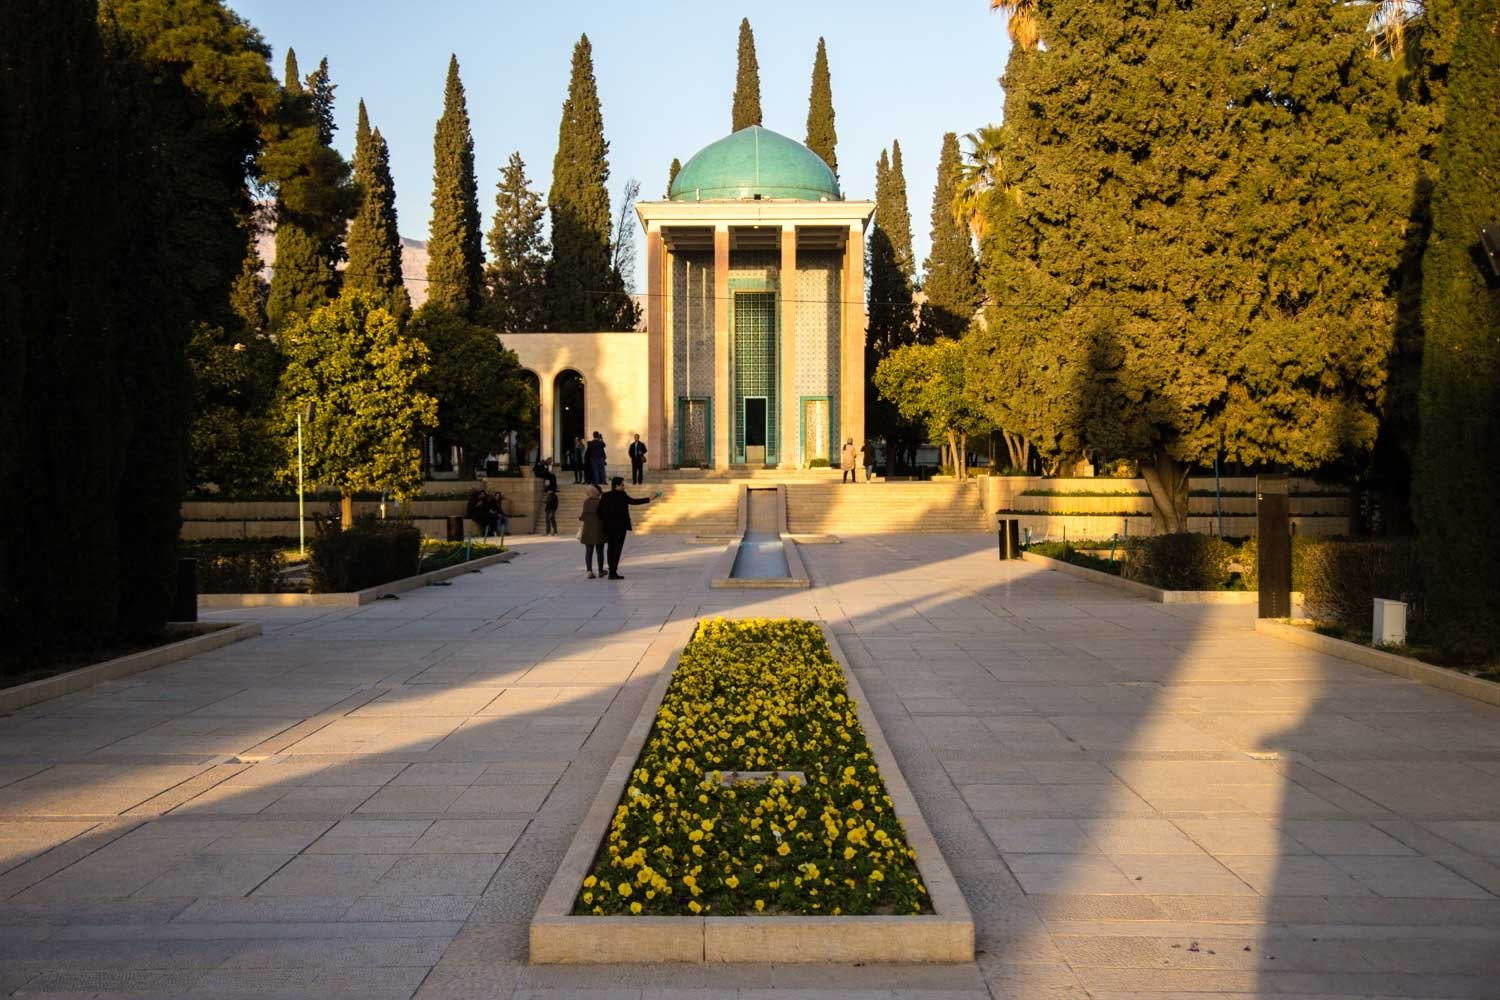 Things to see in Shiraz - Tomb of Saadi